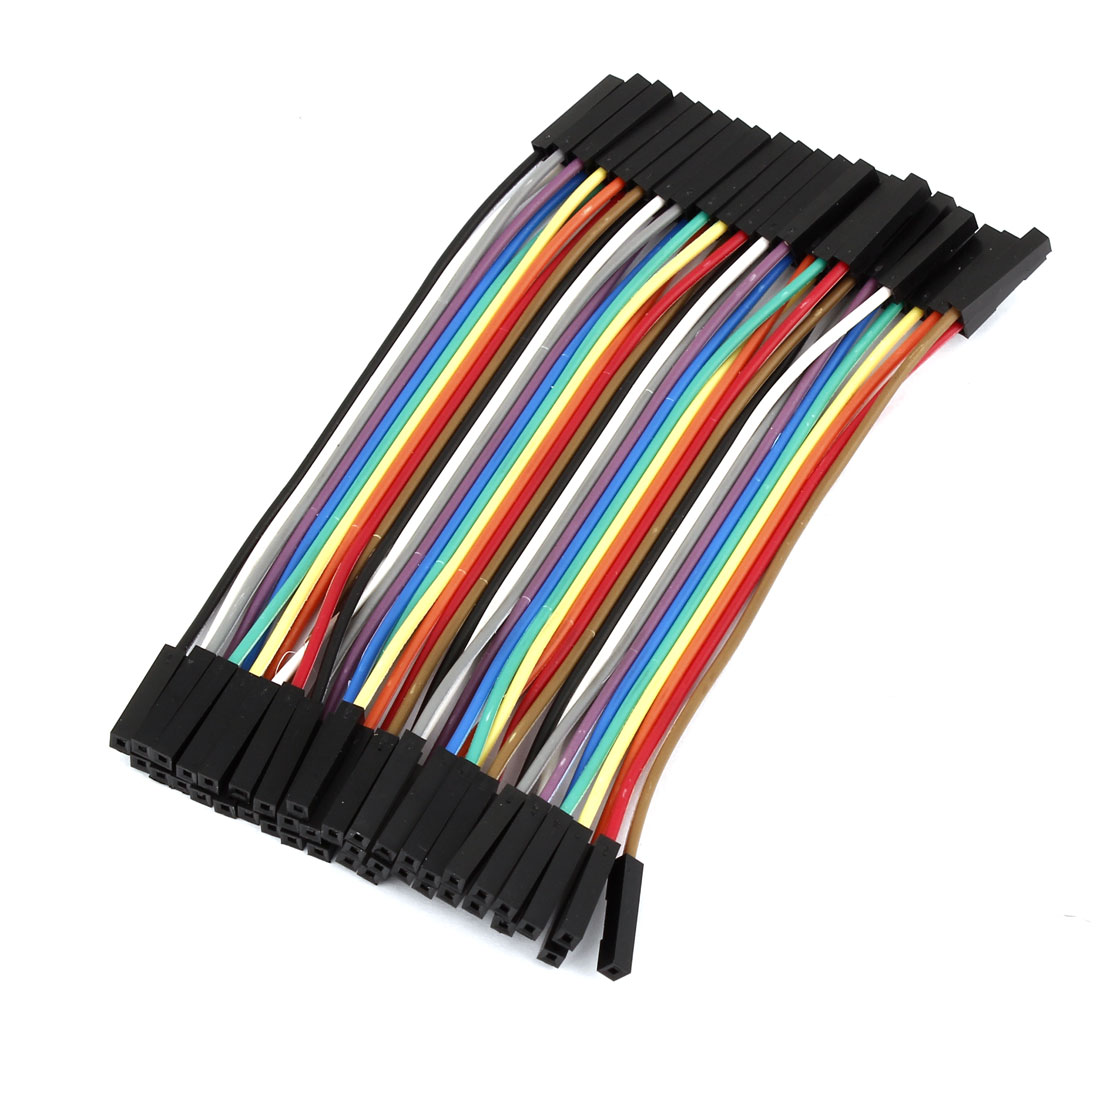 10cm 2.54mm 40-Pin Female to Female Connecting Jumper Wire Cable